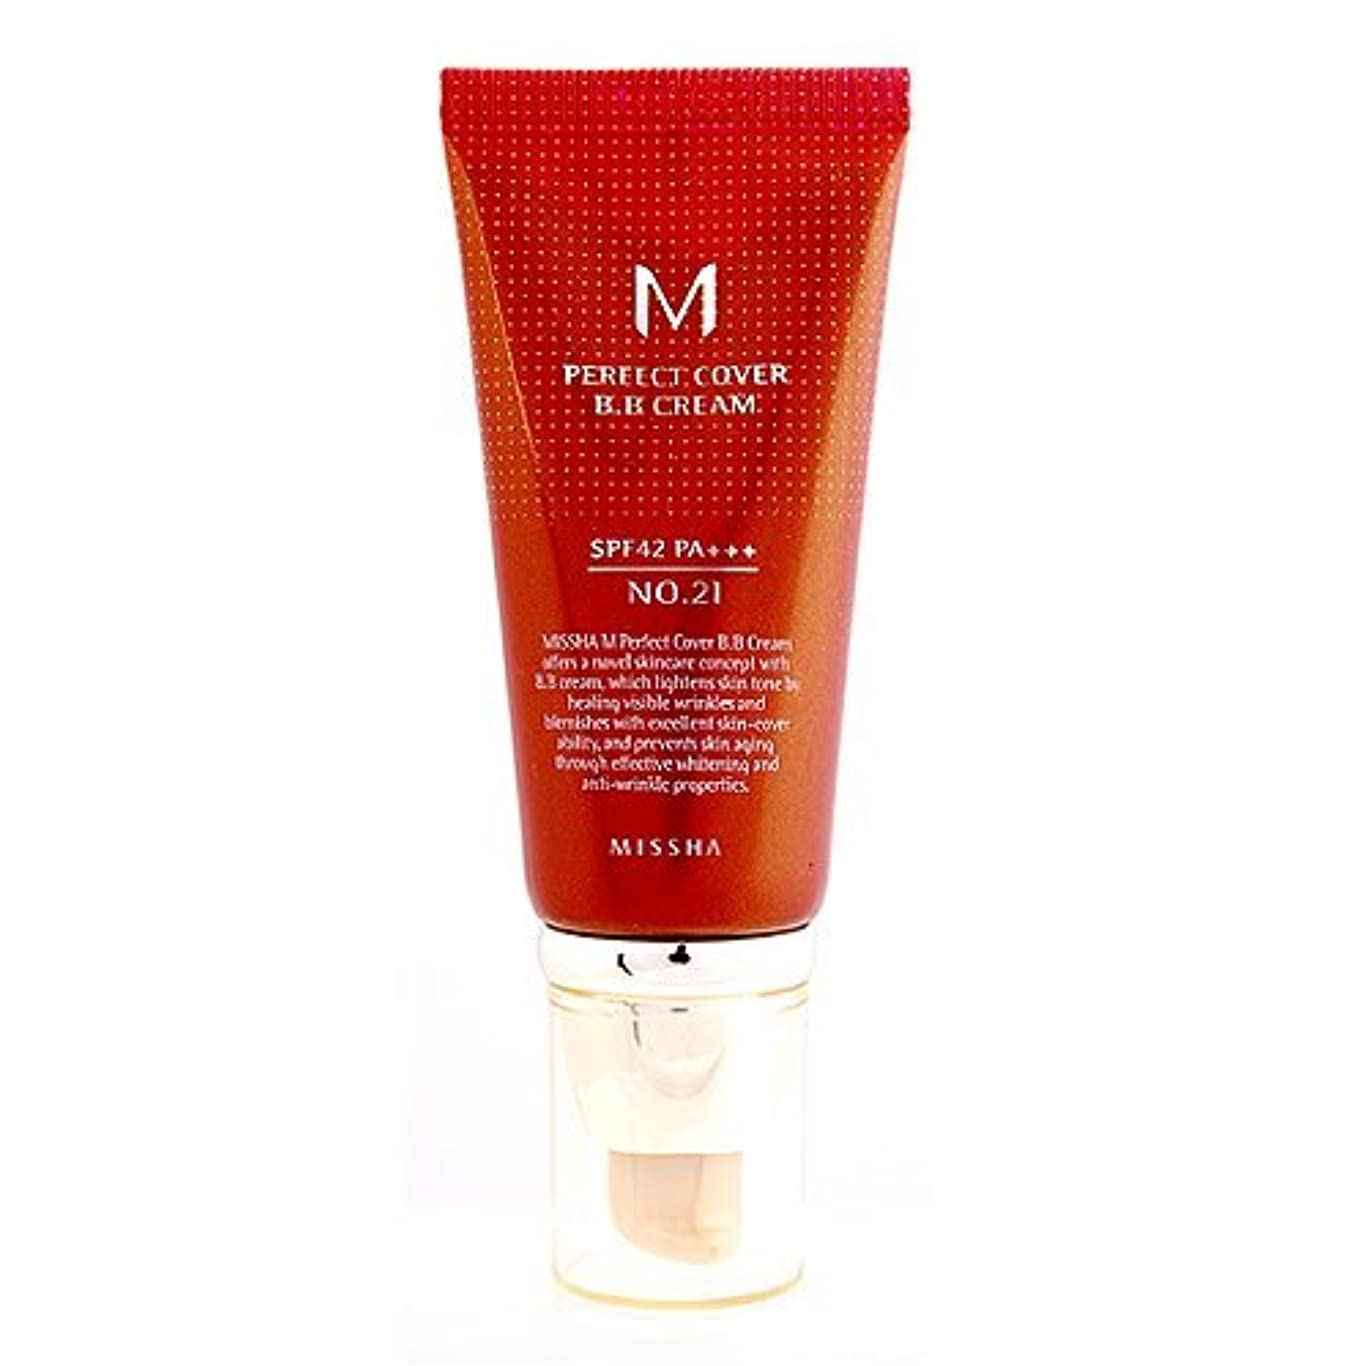 ほうき効率判決Missha M Perfect Cover B.B. Cream SPF 42 PA+++ 21 Light Beige, 1.69oz, 50ml